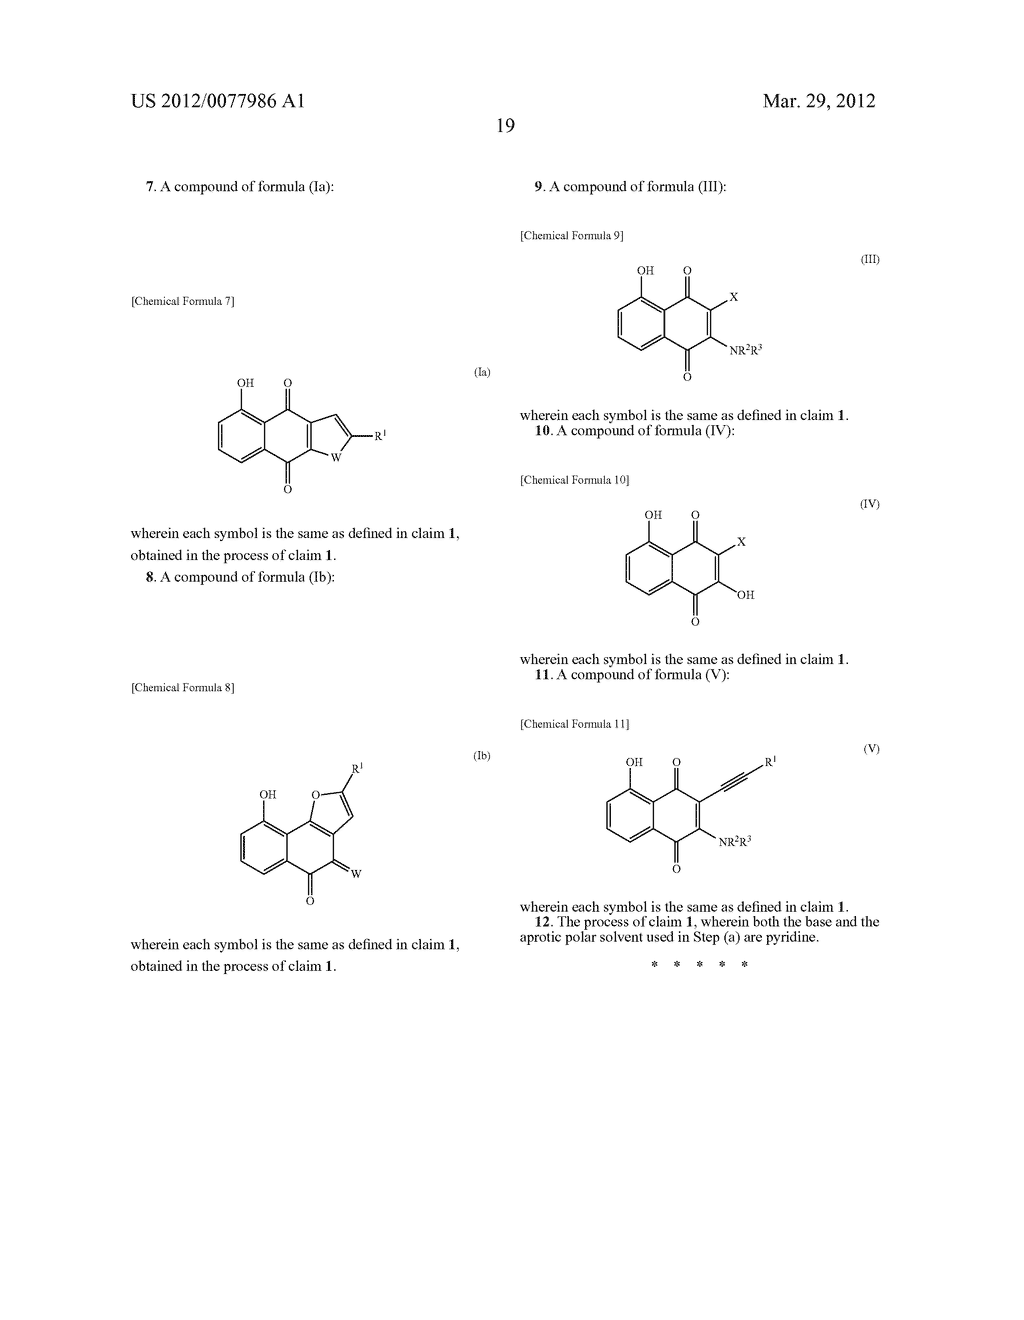 NOVEL PREPARATION OF ANTICANCER-ACTIVE TRICYCLIC COMPOUNDS VIA ALKYNE     COUPLING REACTION - diagram, schematic, and image 20